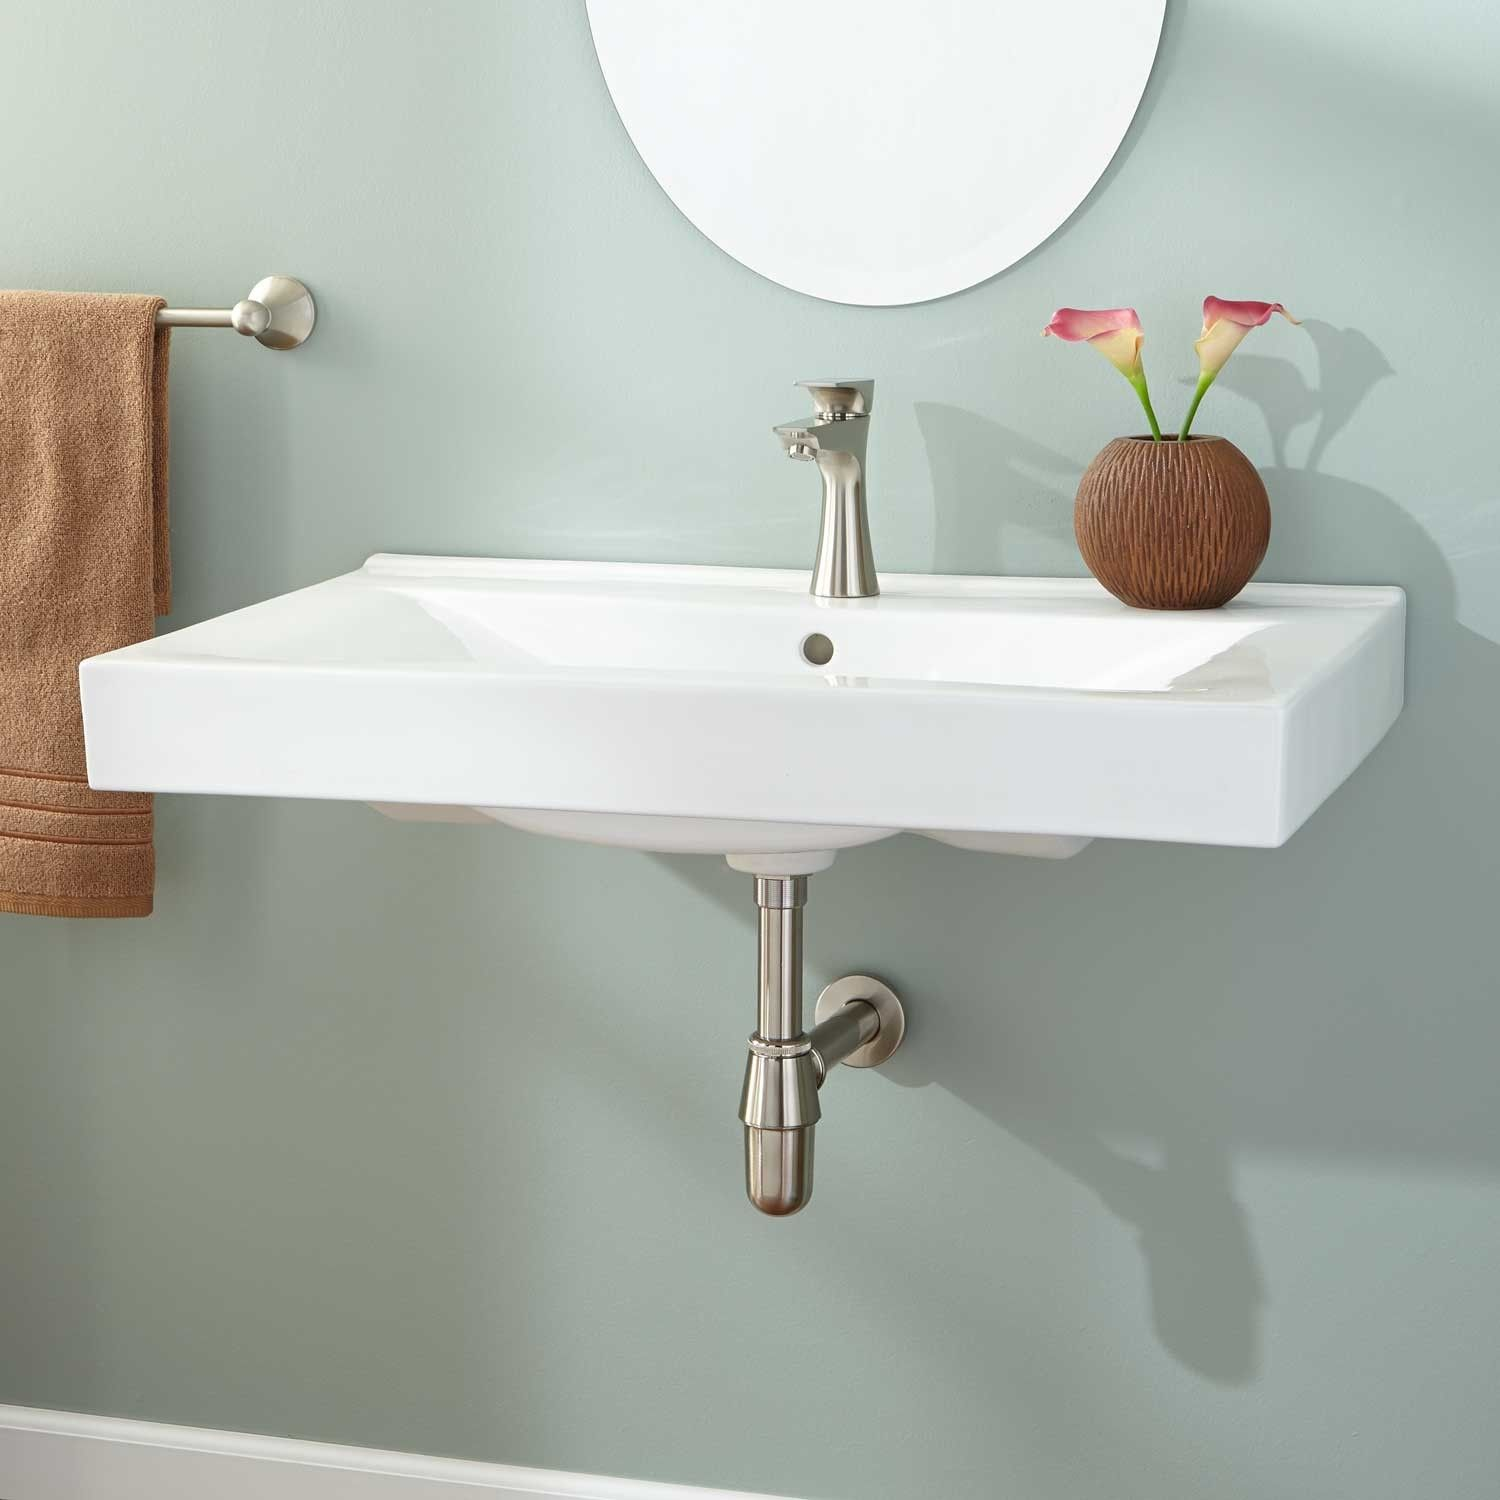 Wall hanging sink bathroom - The Simple Look Of The Maggie Rectangular Wall Mount Sink Allows You To Renovate Your Space Without Worry Of Mismatched Decor To Complete Your Bathroom